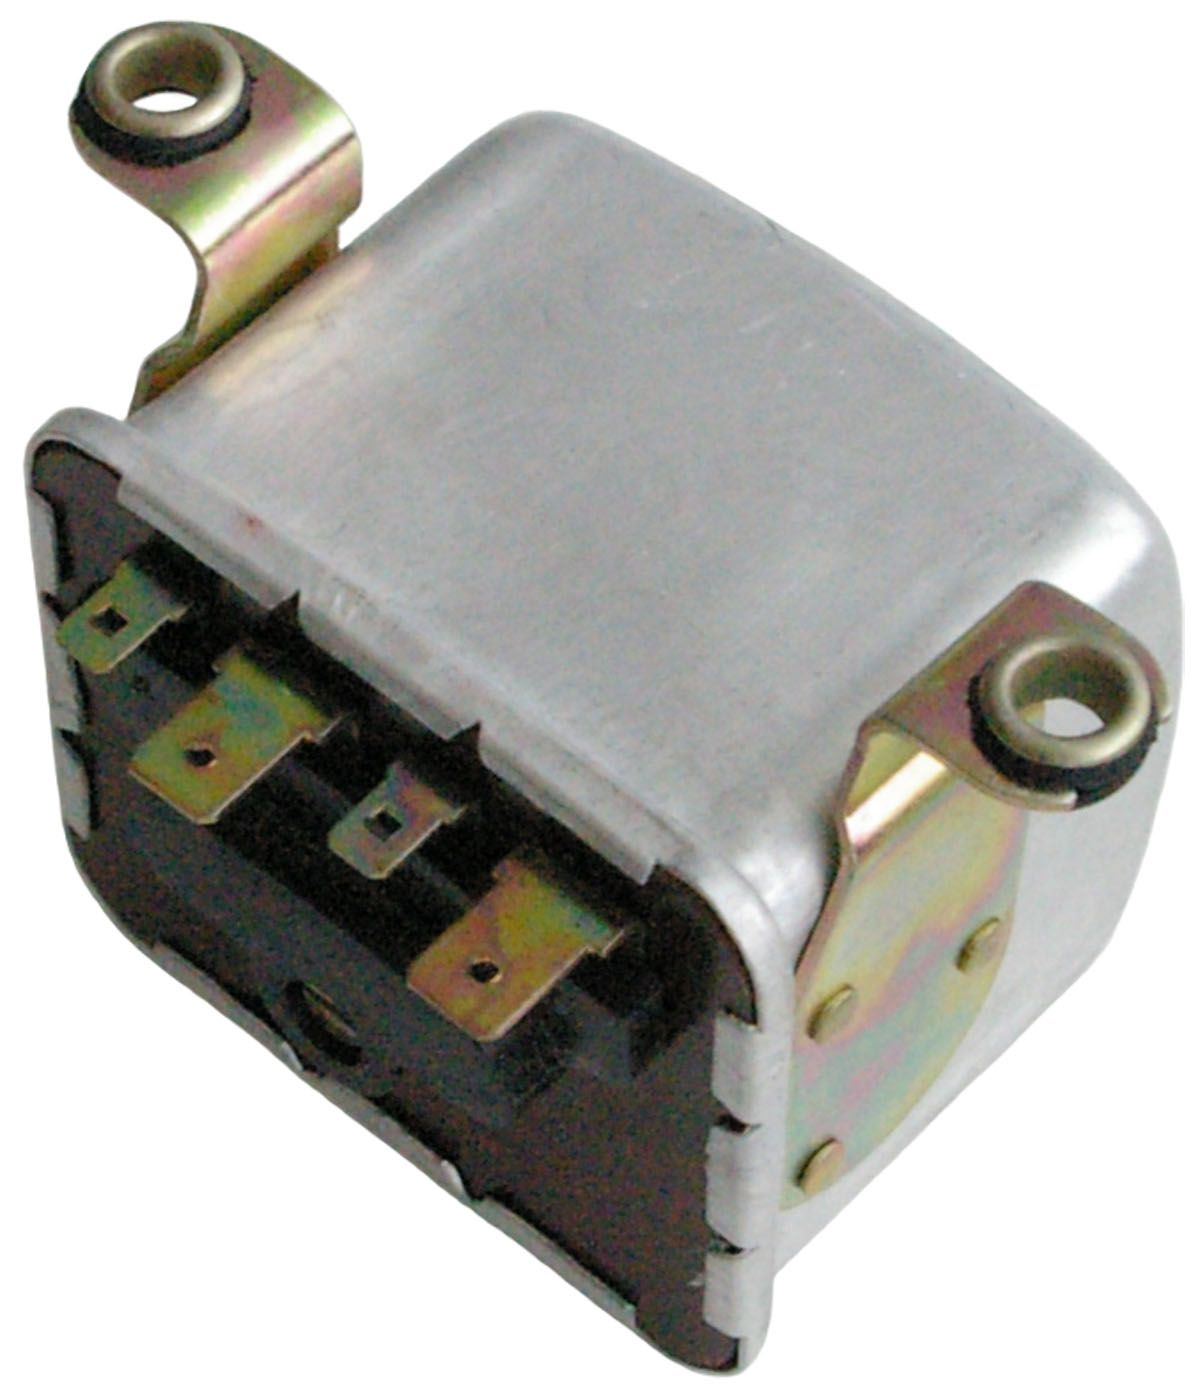 EMMARK FORDSON BULLET CONNECTOR TYPE - (81869661)